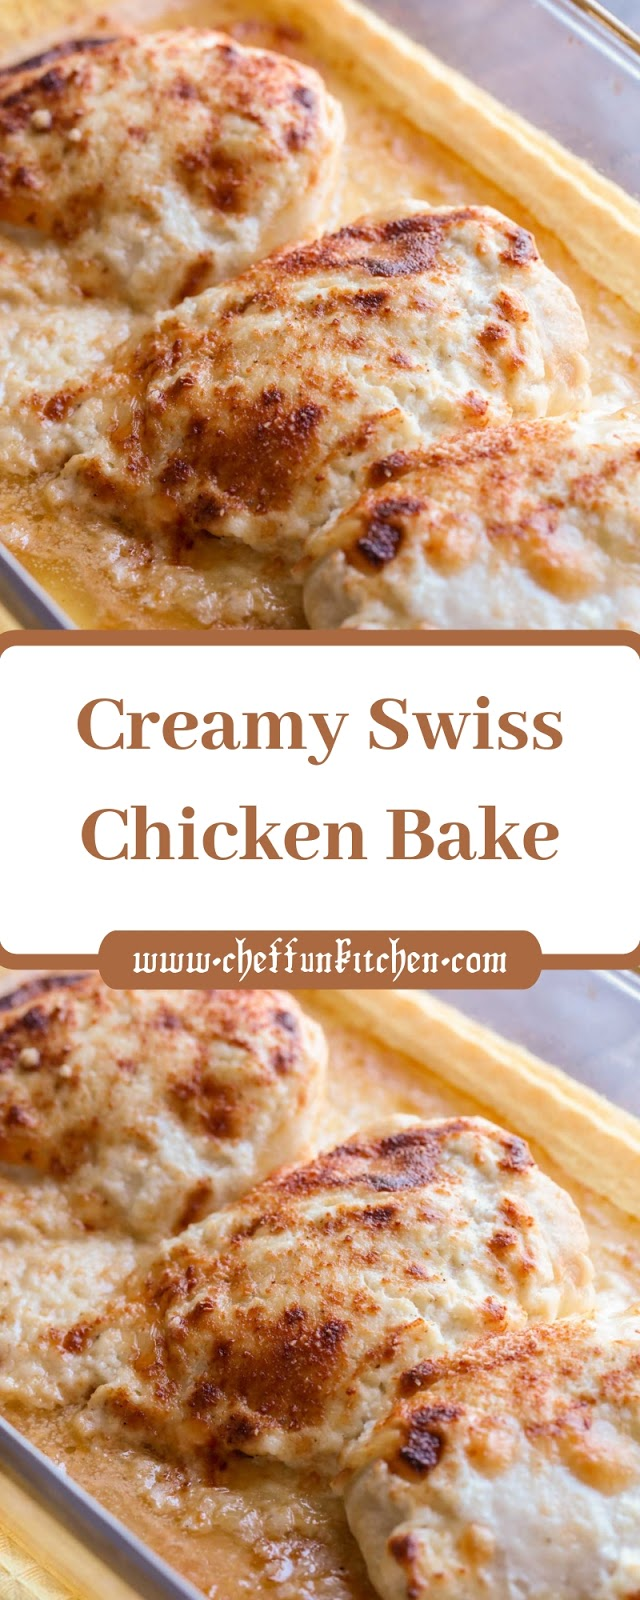 Creamy Swiss Chicken Bake